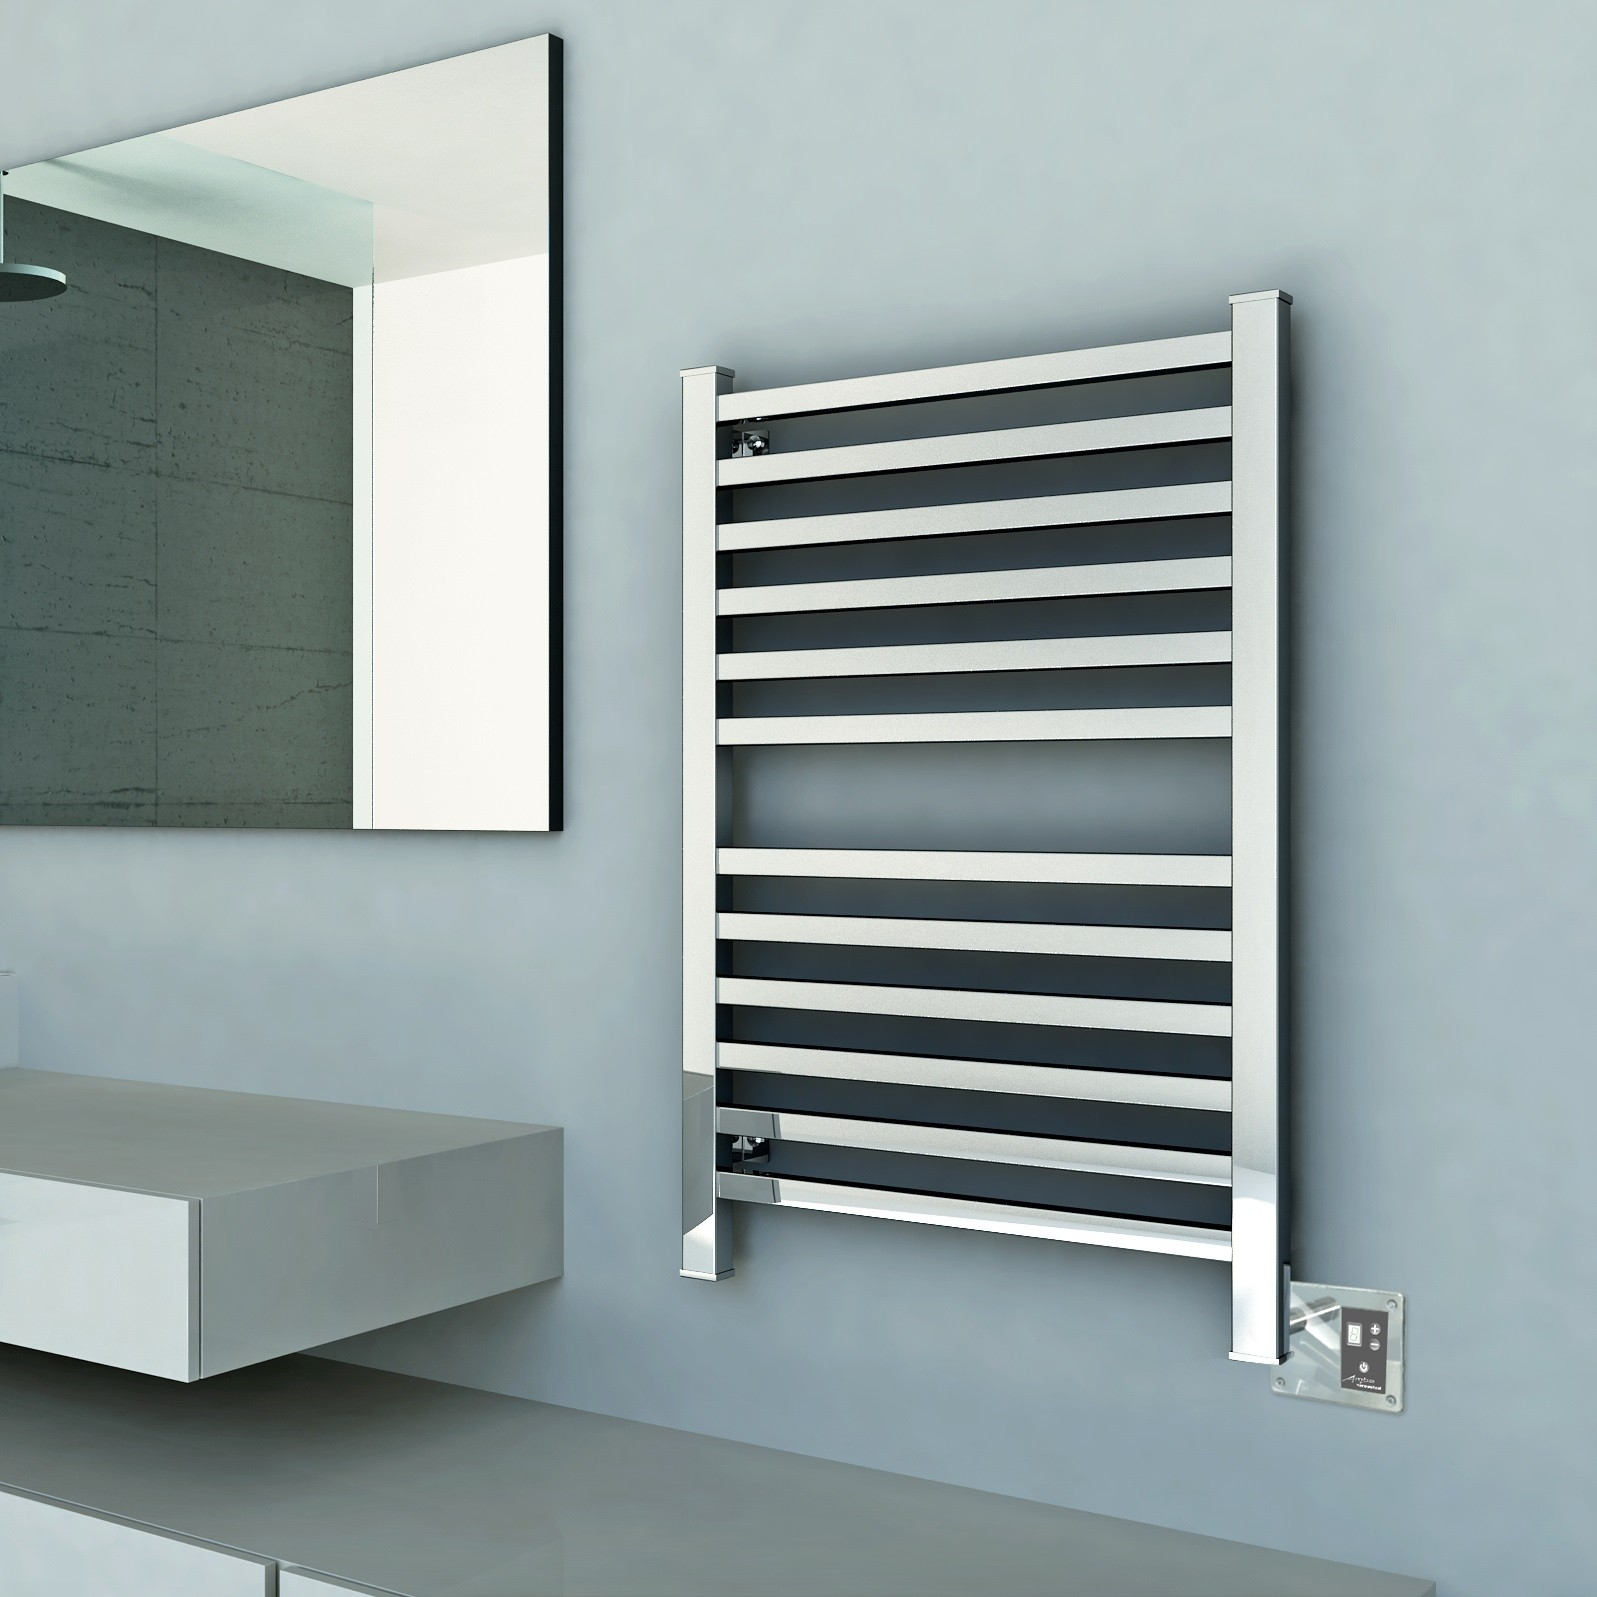 Towel Warmer Brushed Nickel | Towel Rack Wall Mount | Amba Towel Warmers